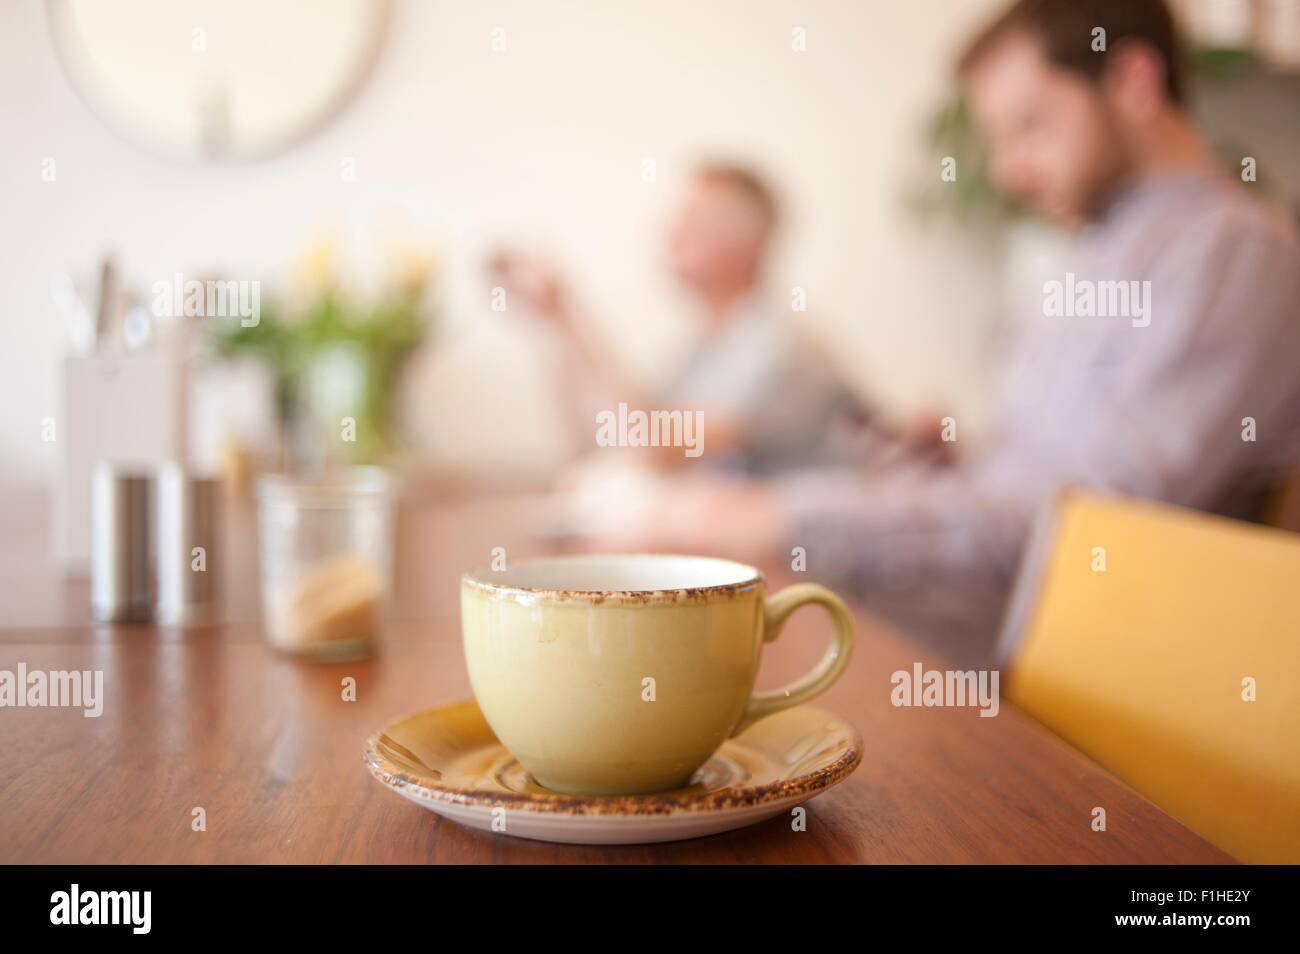 Cup on table and people in background in a cafe - Stock Image